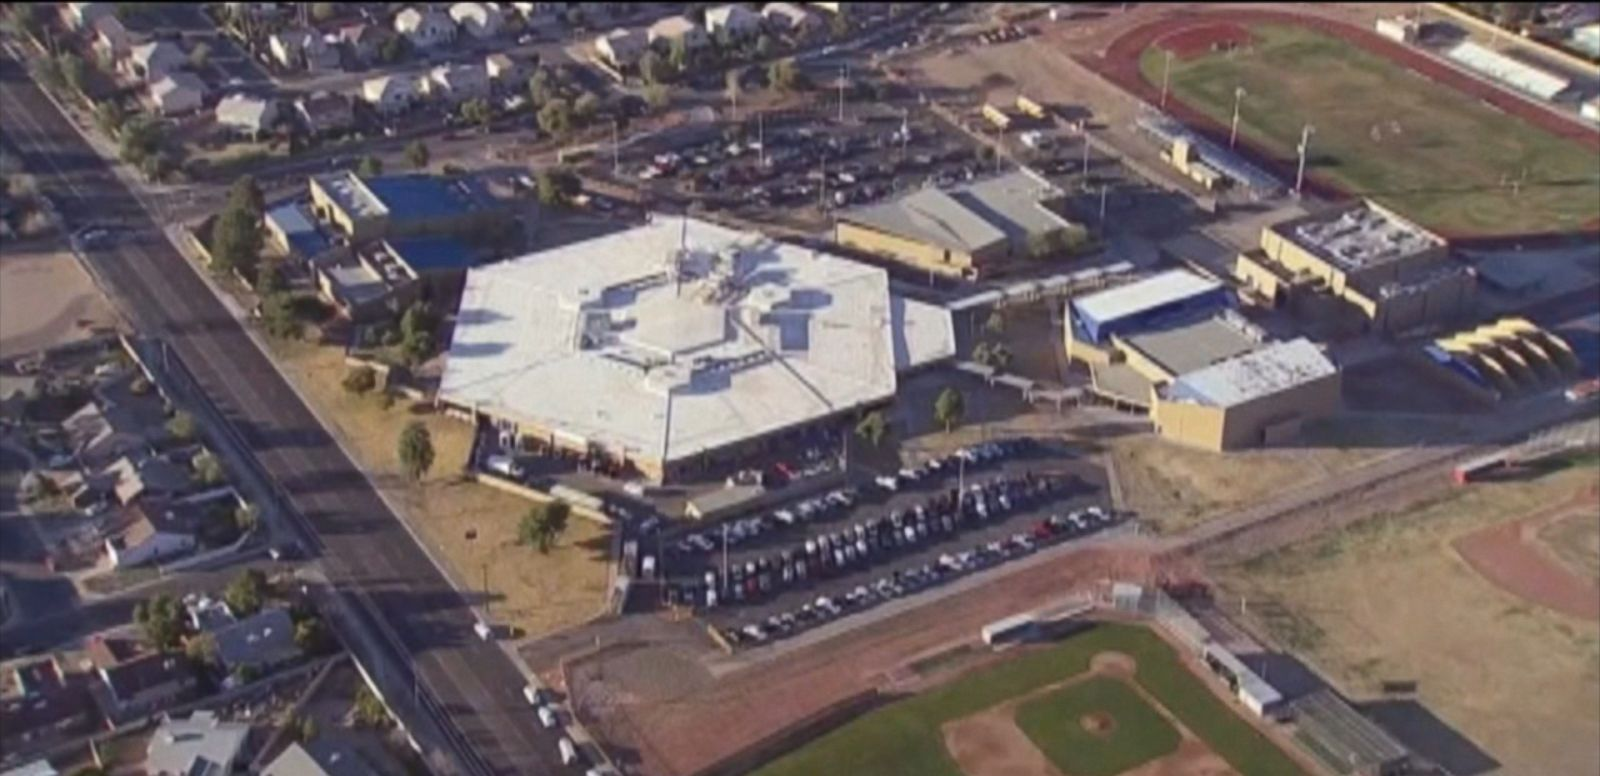 VIDEO: After a double shooting at a Glendale, Arizona, high school this morning, police said the incident was isolated and the school and neighborhood are now safe.